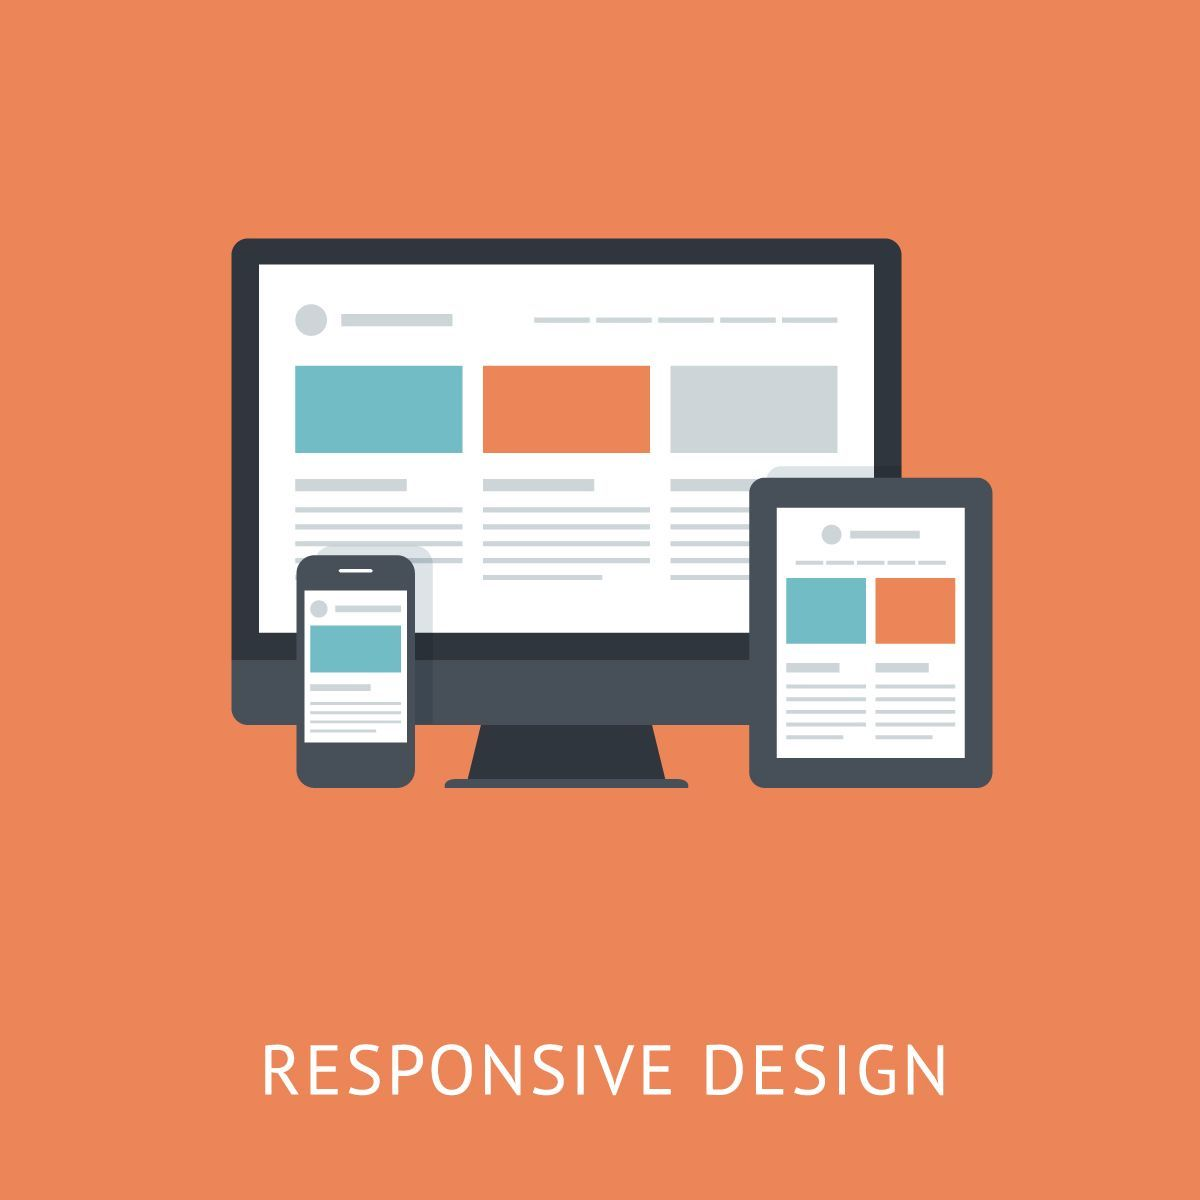 Pinpoint Web Services Belfast Web Design Northern Ireland We Are Experienced W Pinpoint Web Ser In 2020 Web Design Quotes Online Web Design Business Web Design